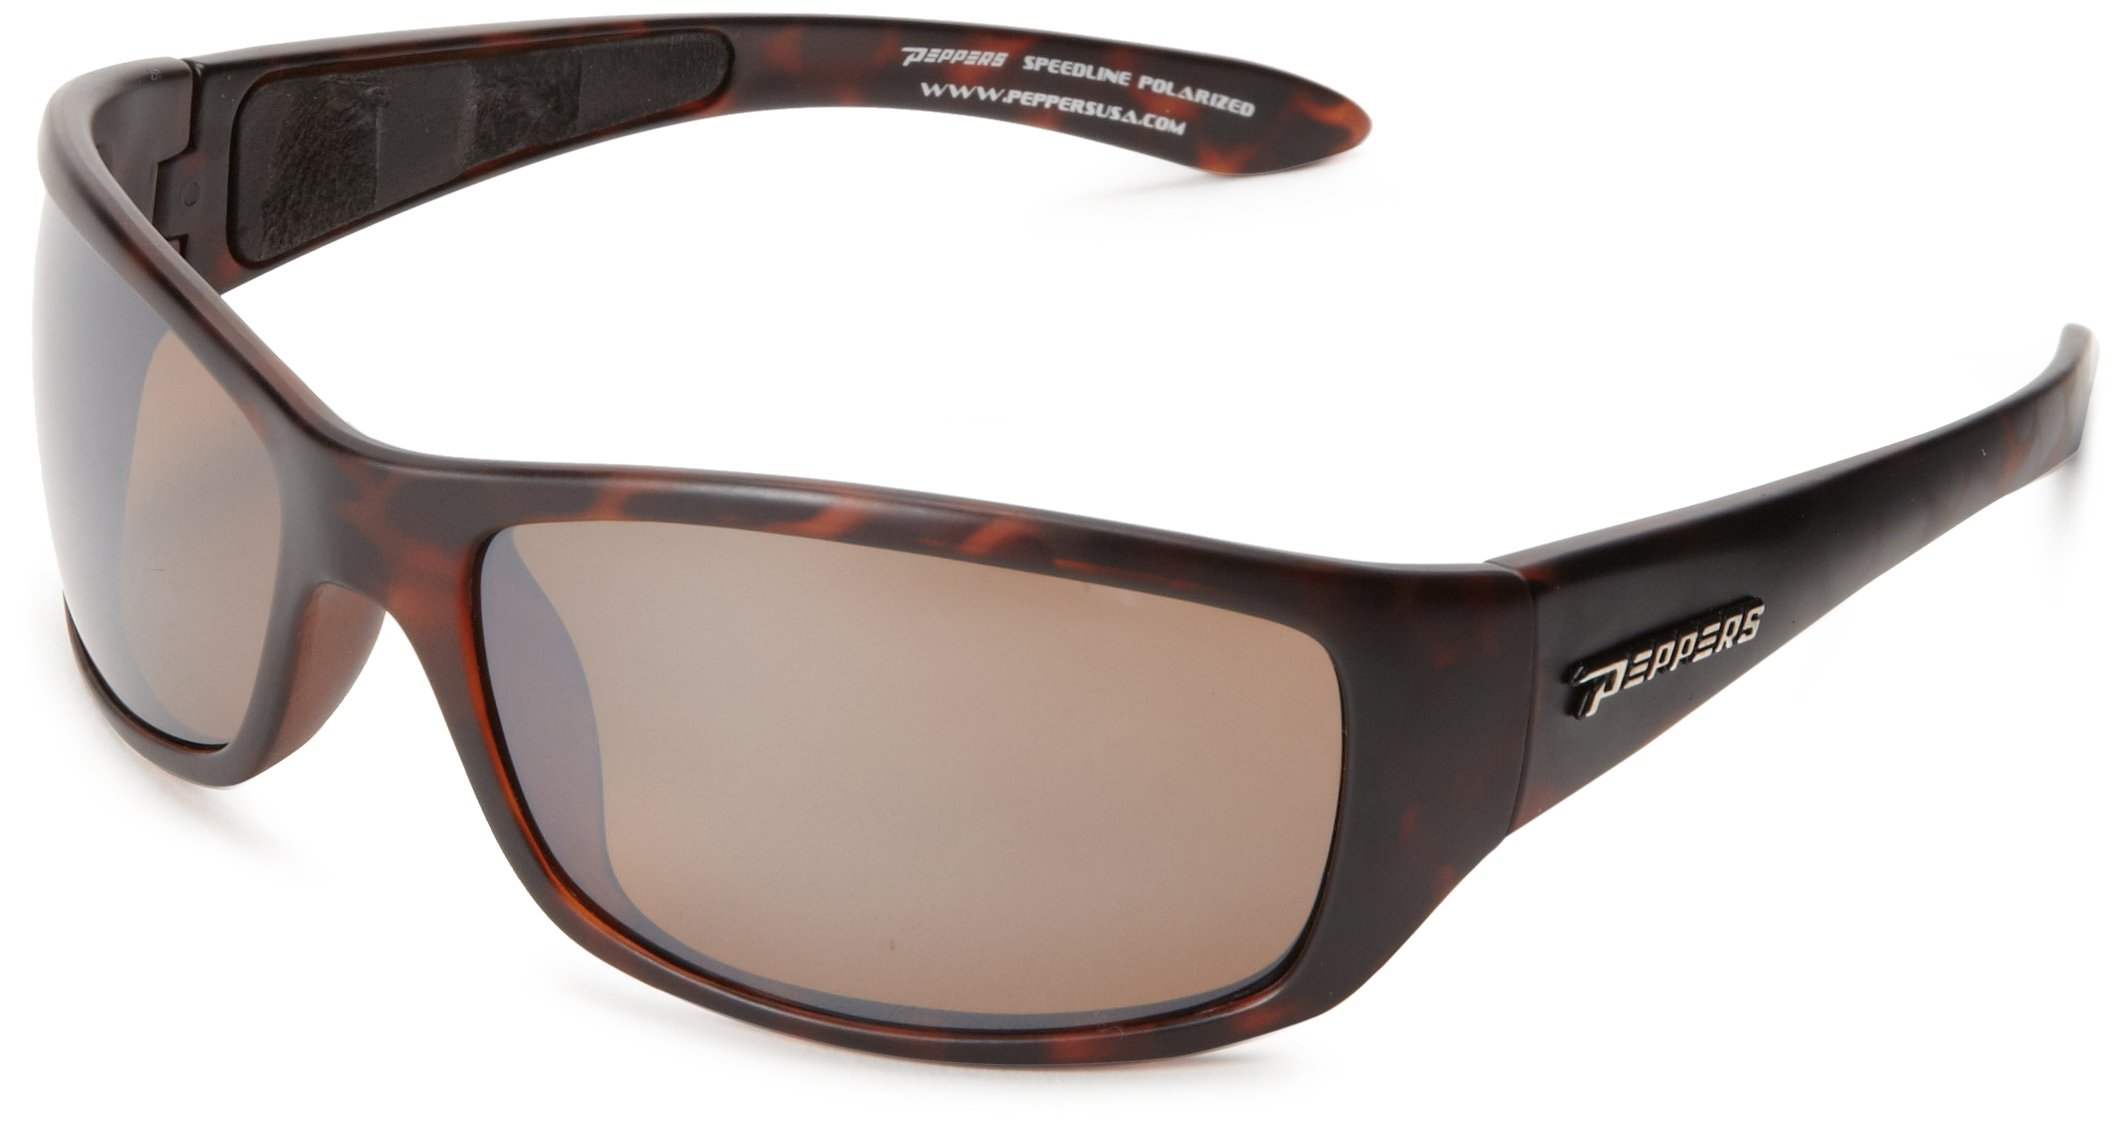 Pepper's Cutthroat FL7344-5 Polarized Sport Sunglasses,Dark Tortoise,One size by Peppers